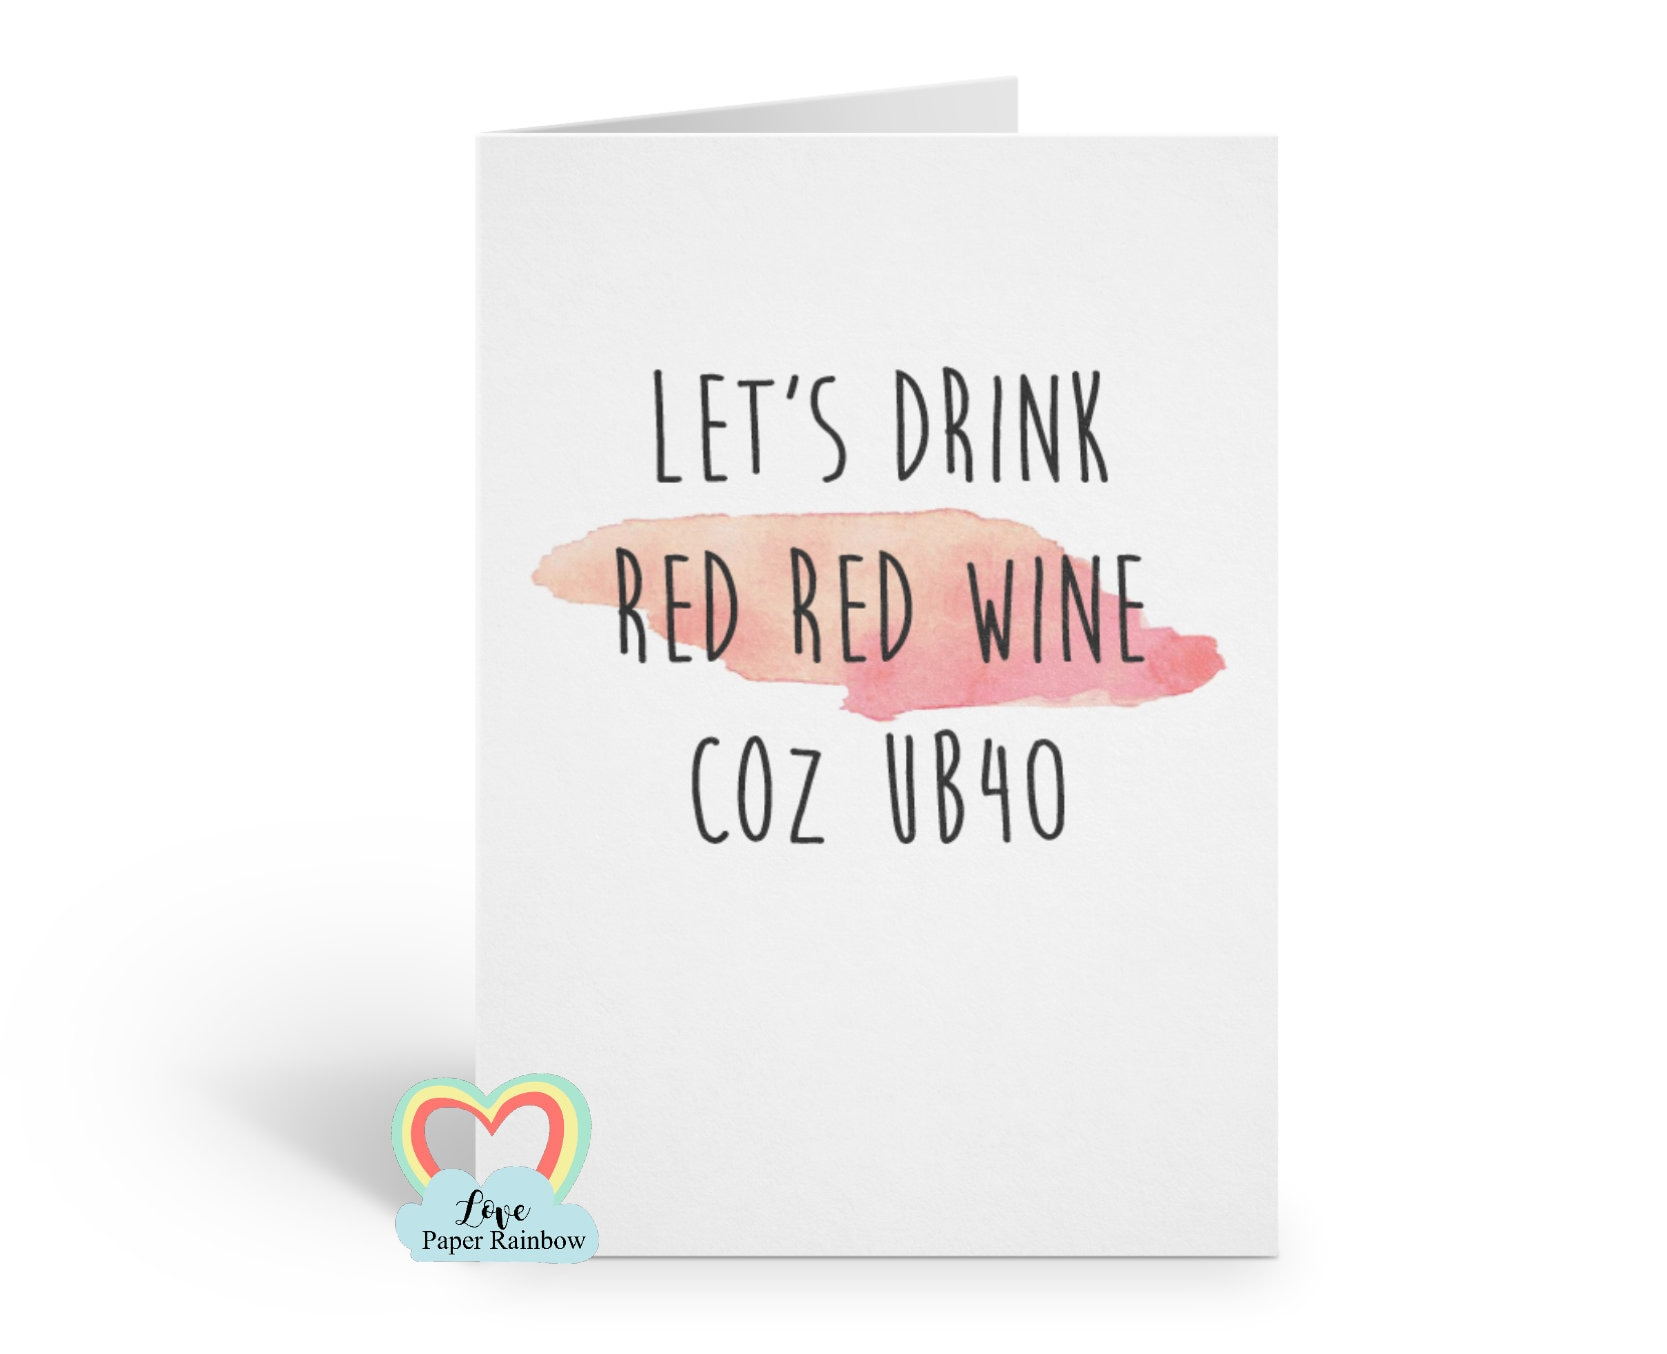 Let's drink red, red wine because UB40, Funny 40th Birthday Card, 40th  Birthday Card, 40th Birthday card Friend, pun birthday card